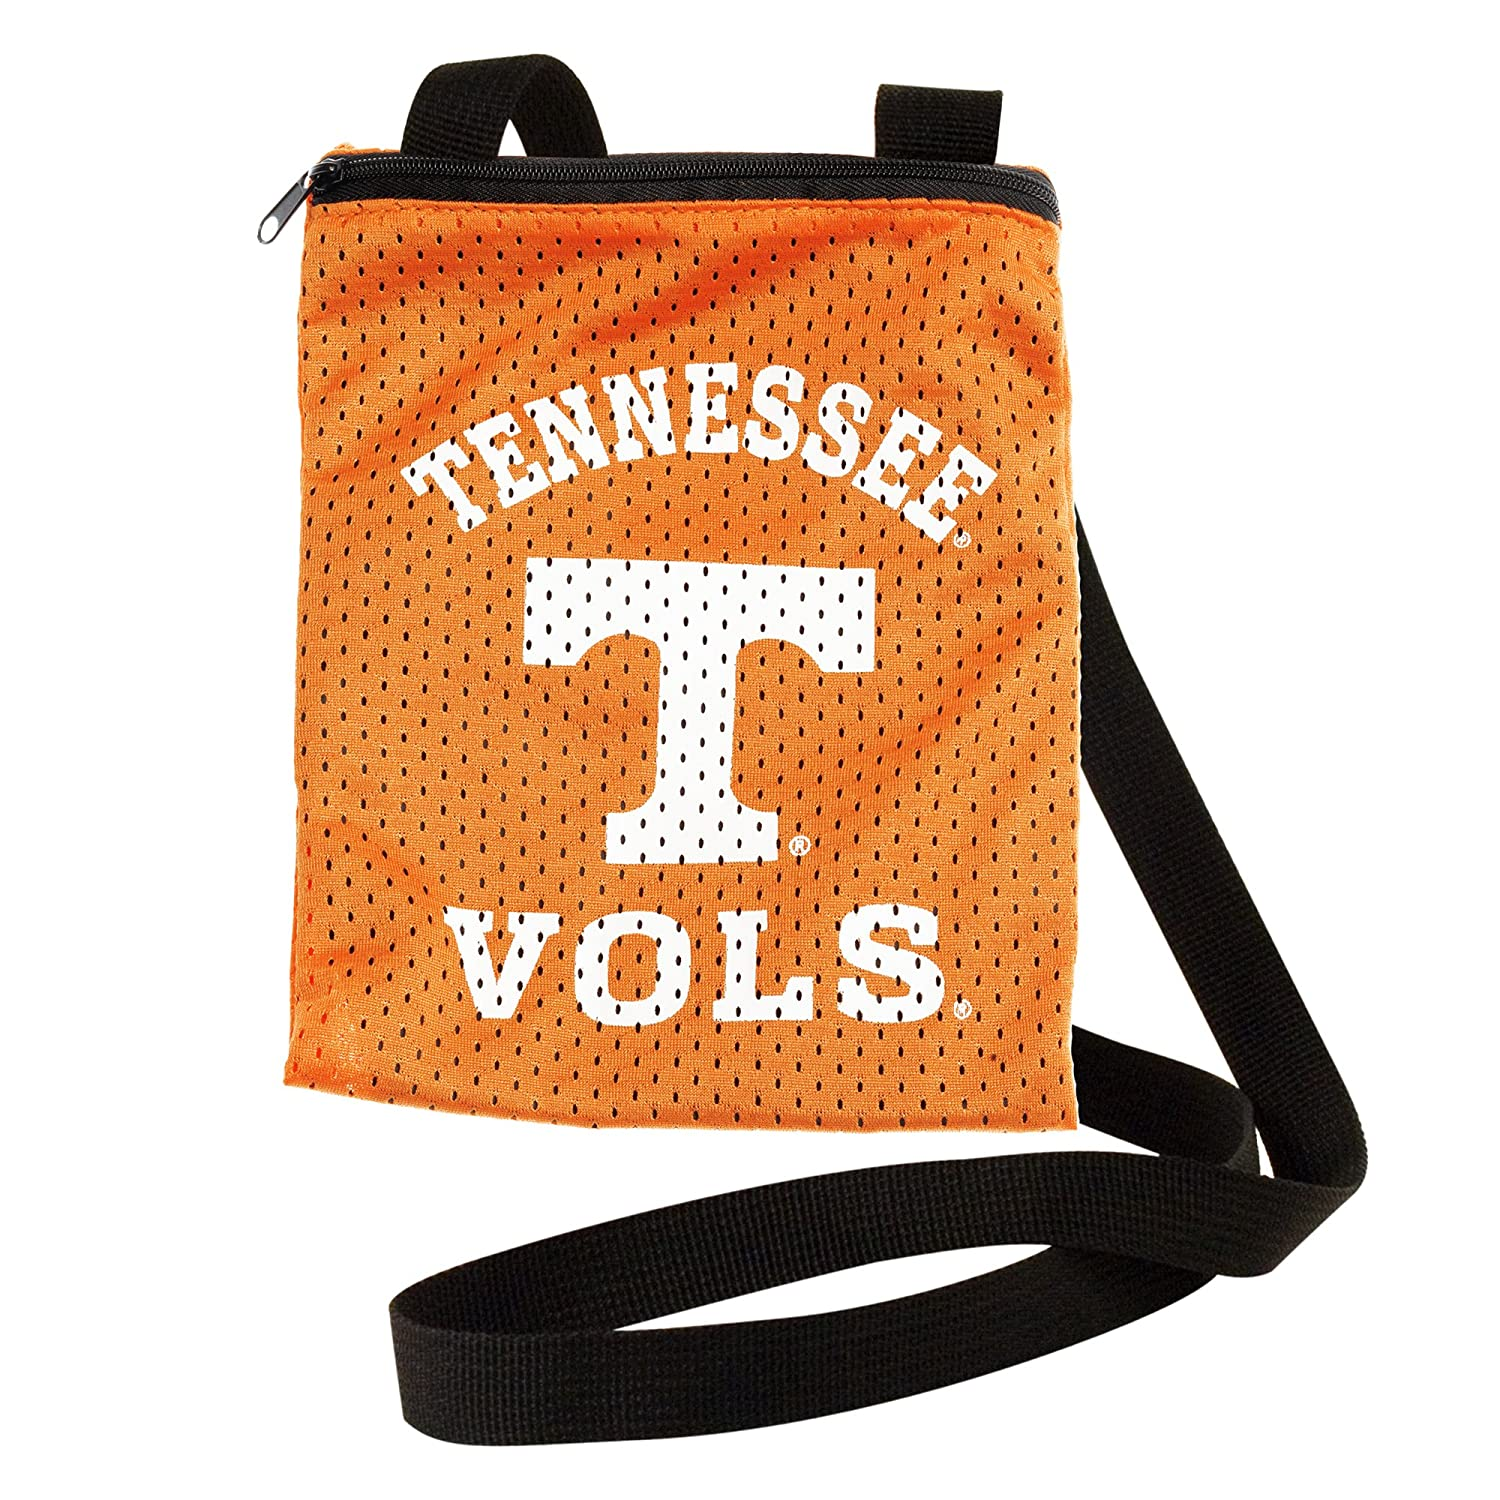 Little Earth 100103-UTNN-1 Tennessee Volunteers Team Game Day Pouch   B079J5M4JR